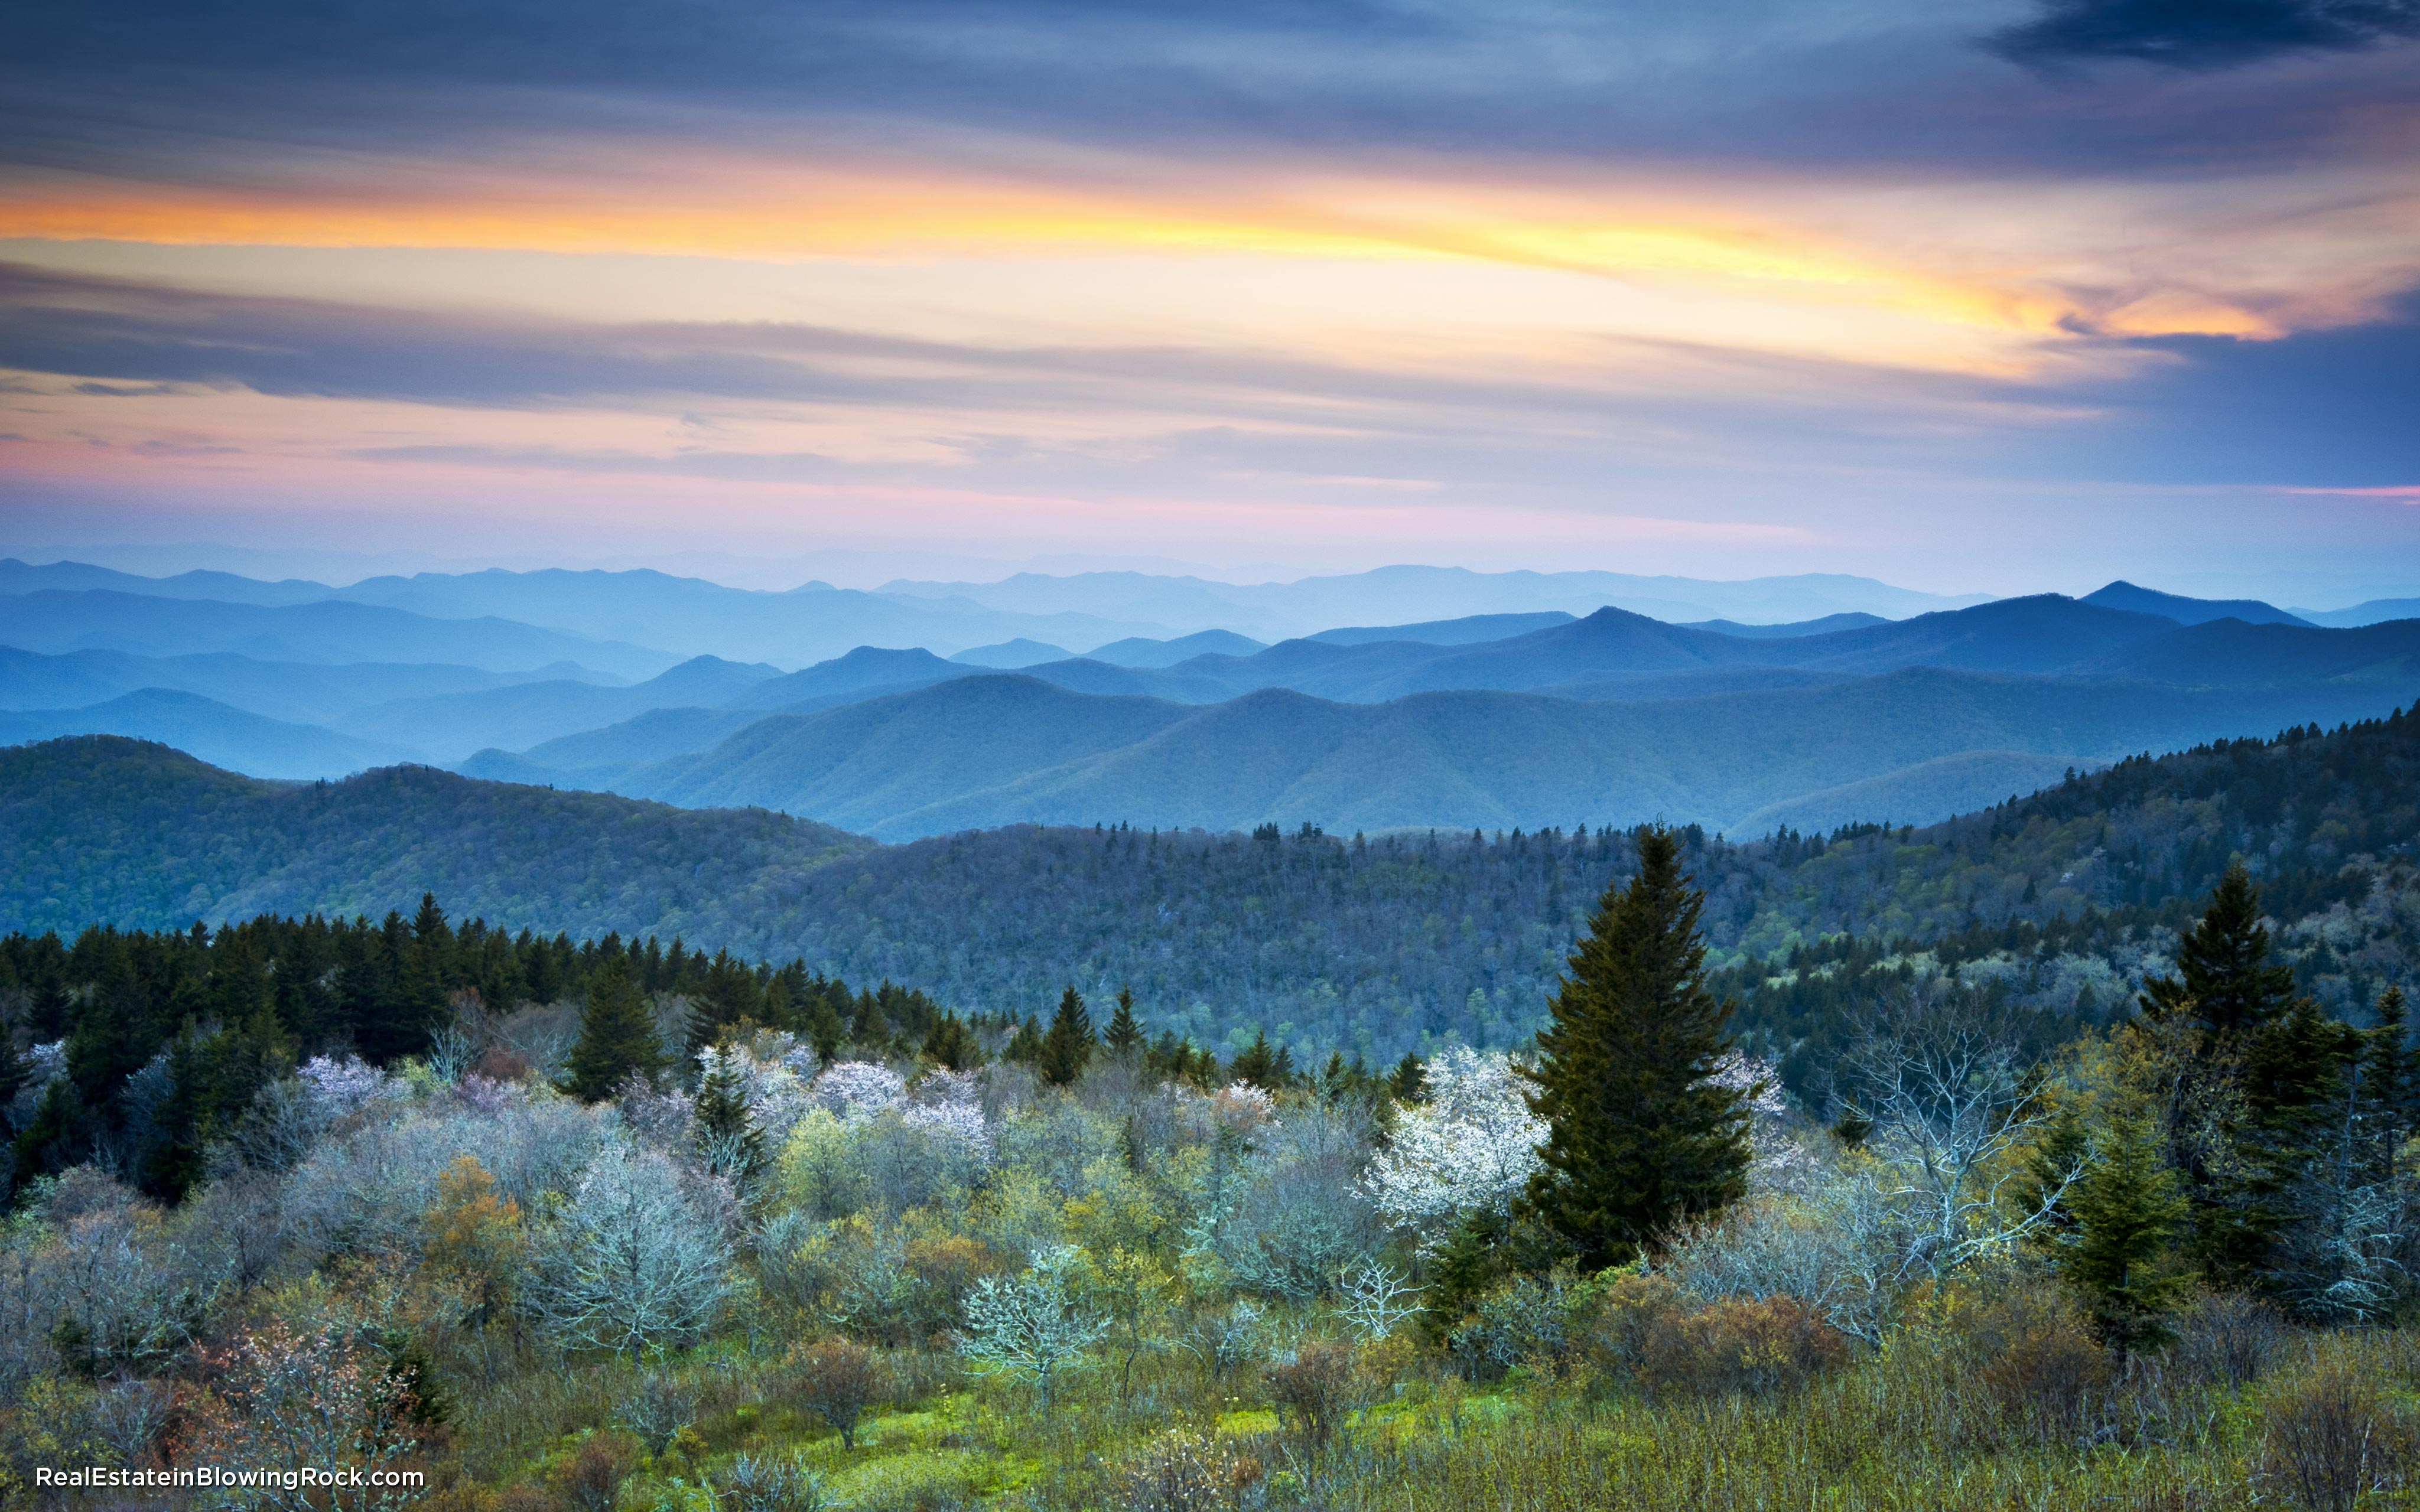 Blowing Rock Wallpaper Images